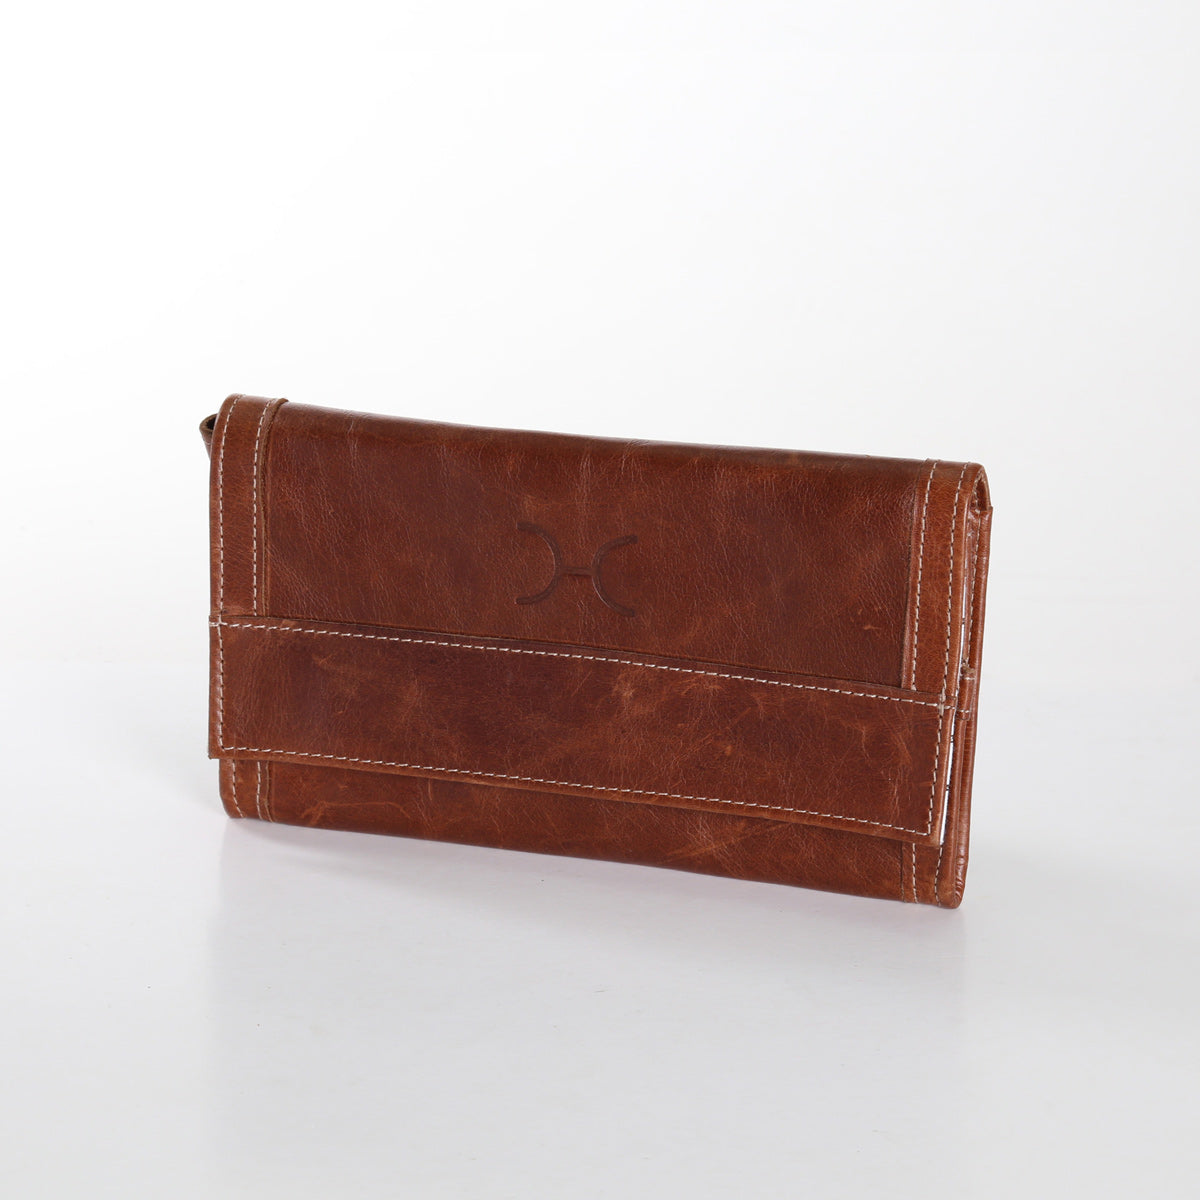 Thandana Travel Wallet - Brown - Zufrique Boutique